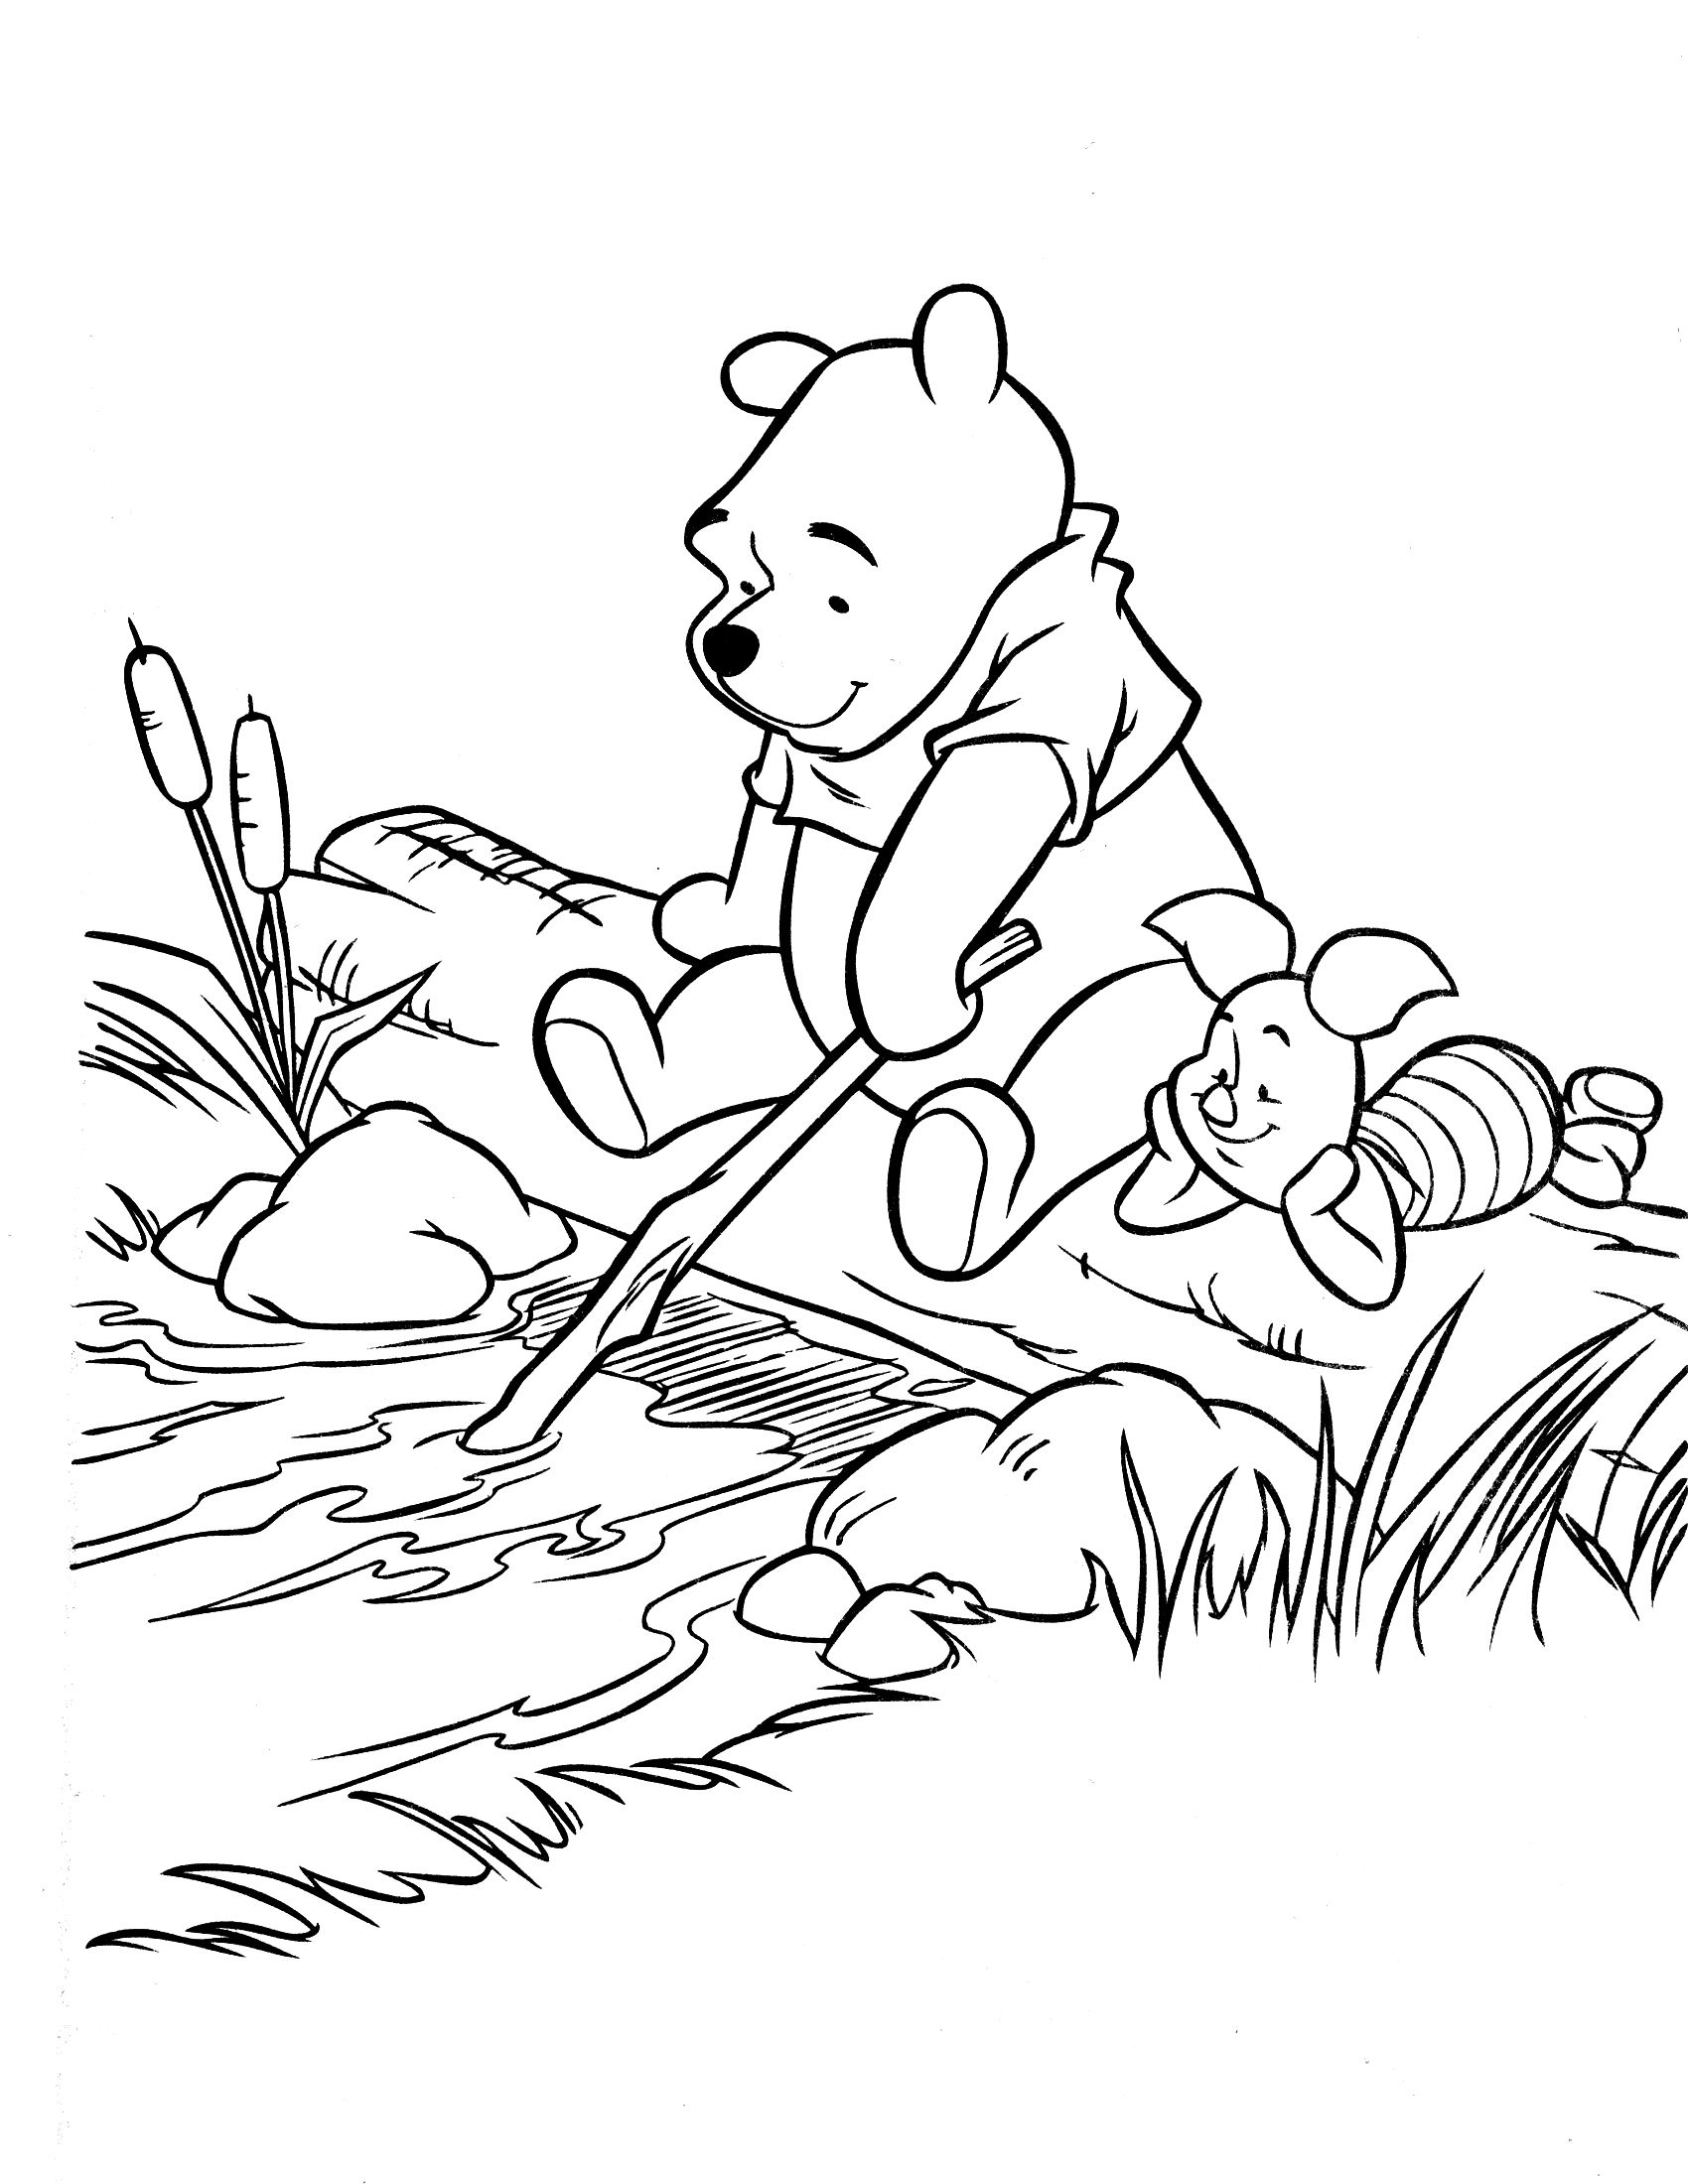 Pooh Coloring Page